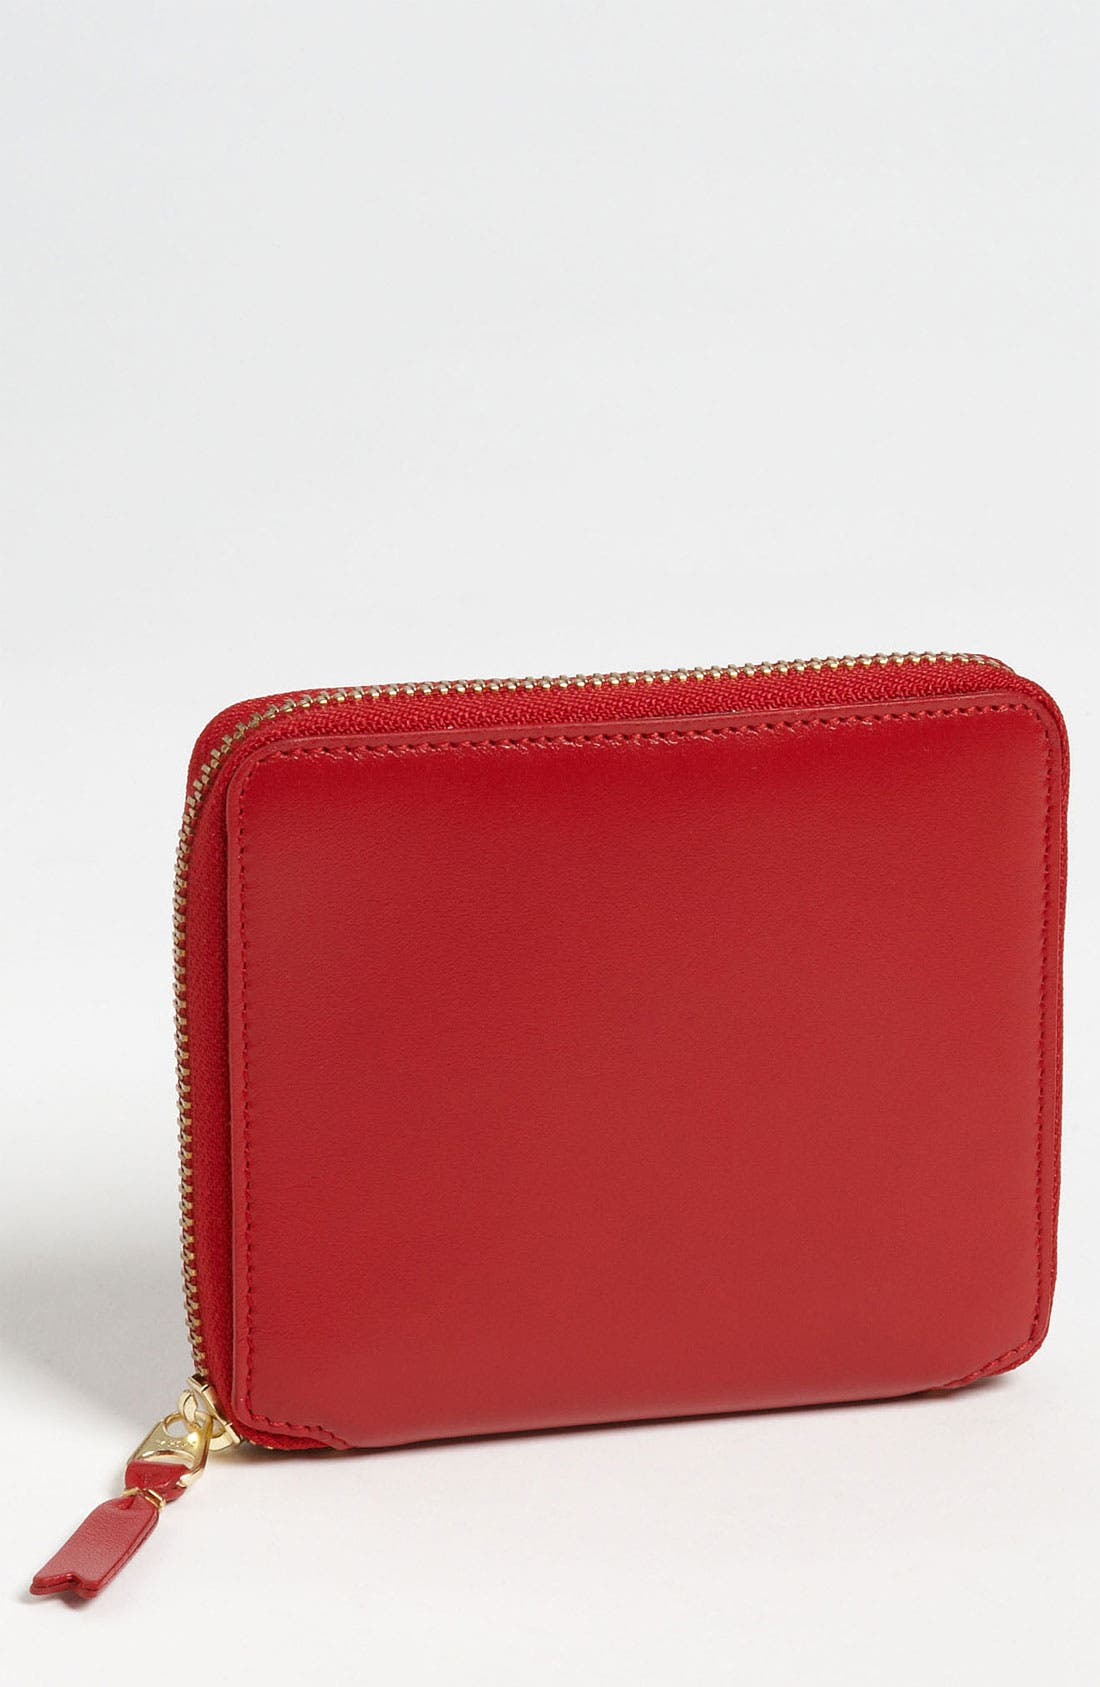 Alternate Image 1 Selected - Comme des Garçons 'Classic' French Wallet